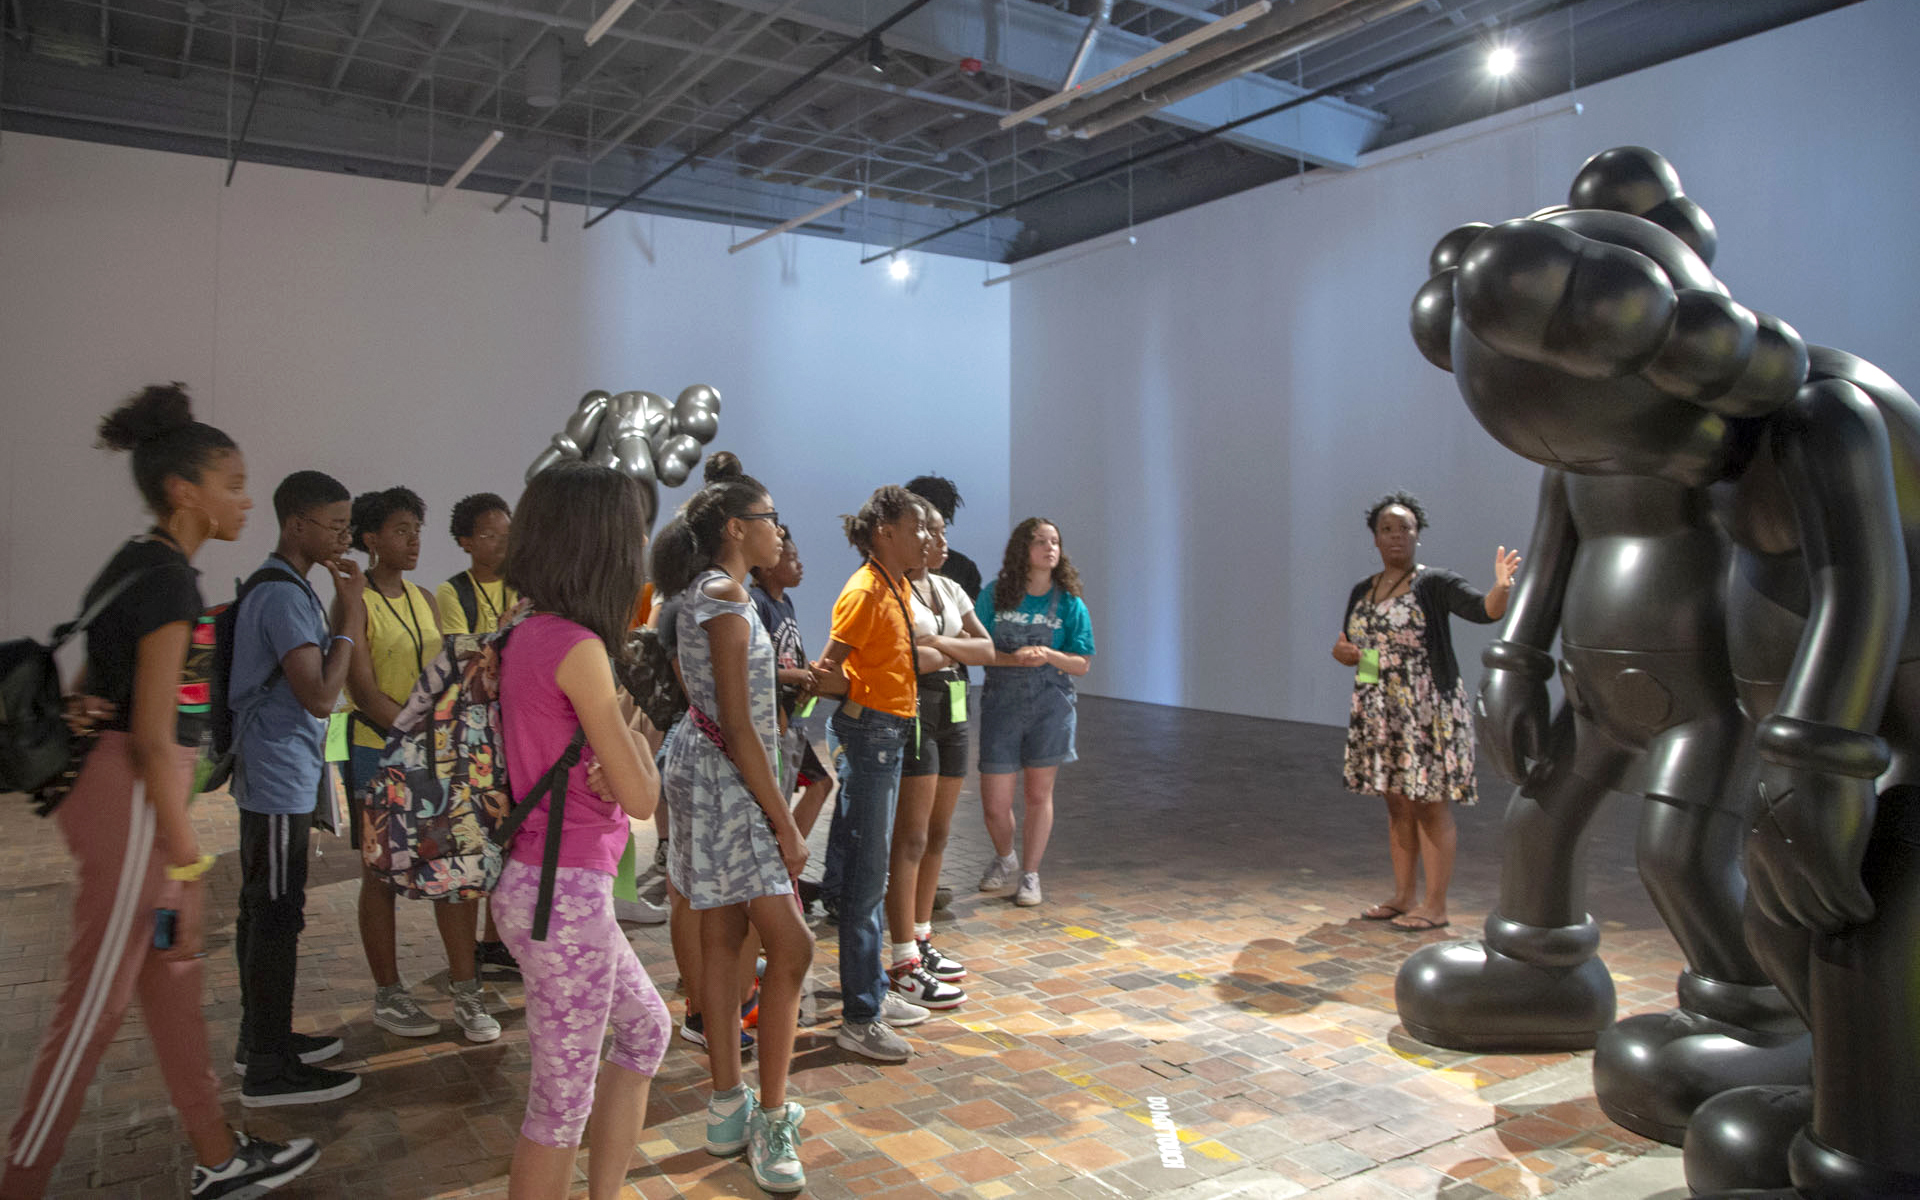 Youth tour of the exhibition KAWS: ALONE AGAIN at MOCAD, 2019